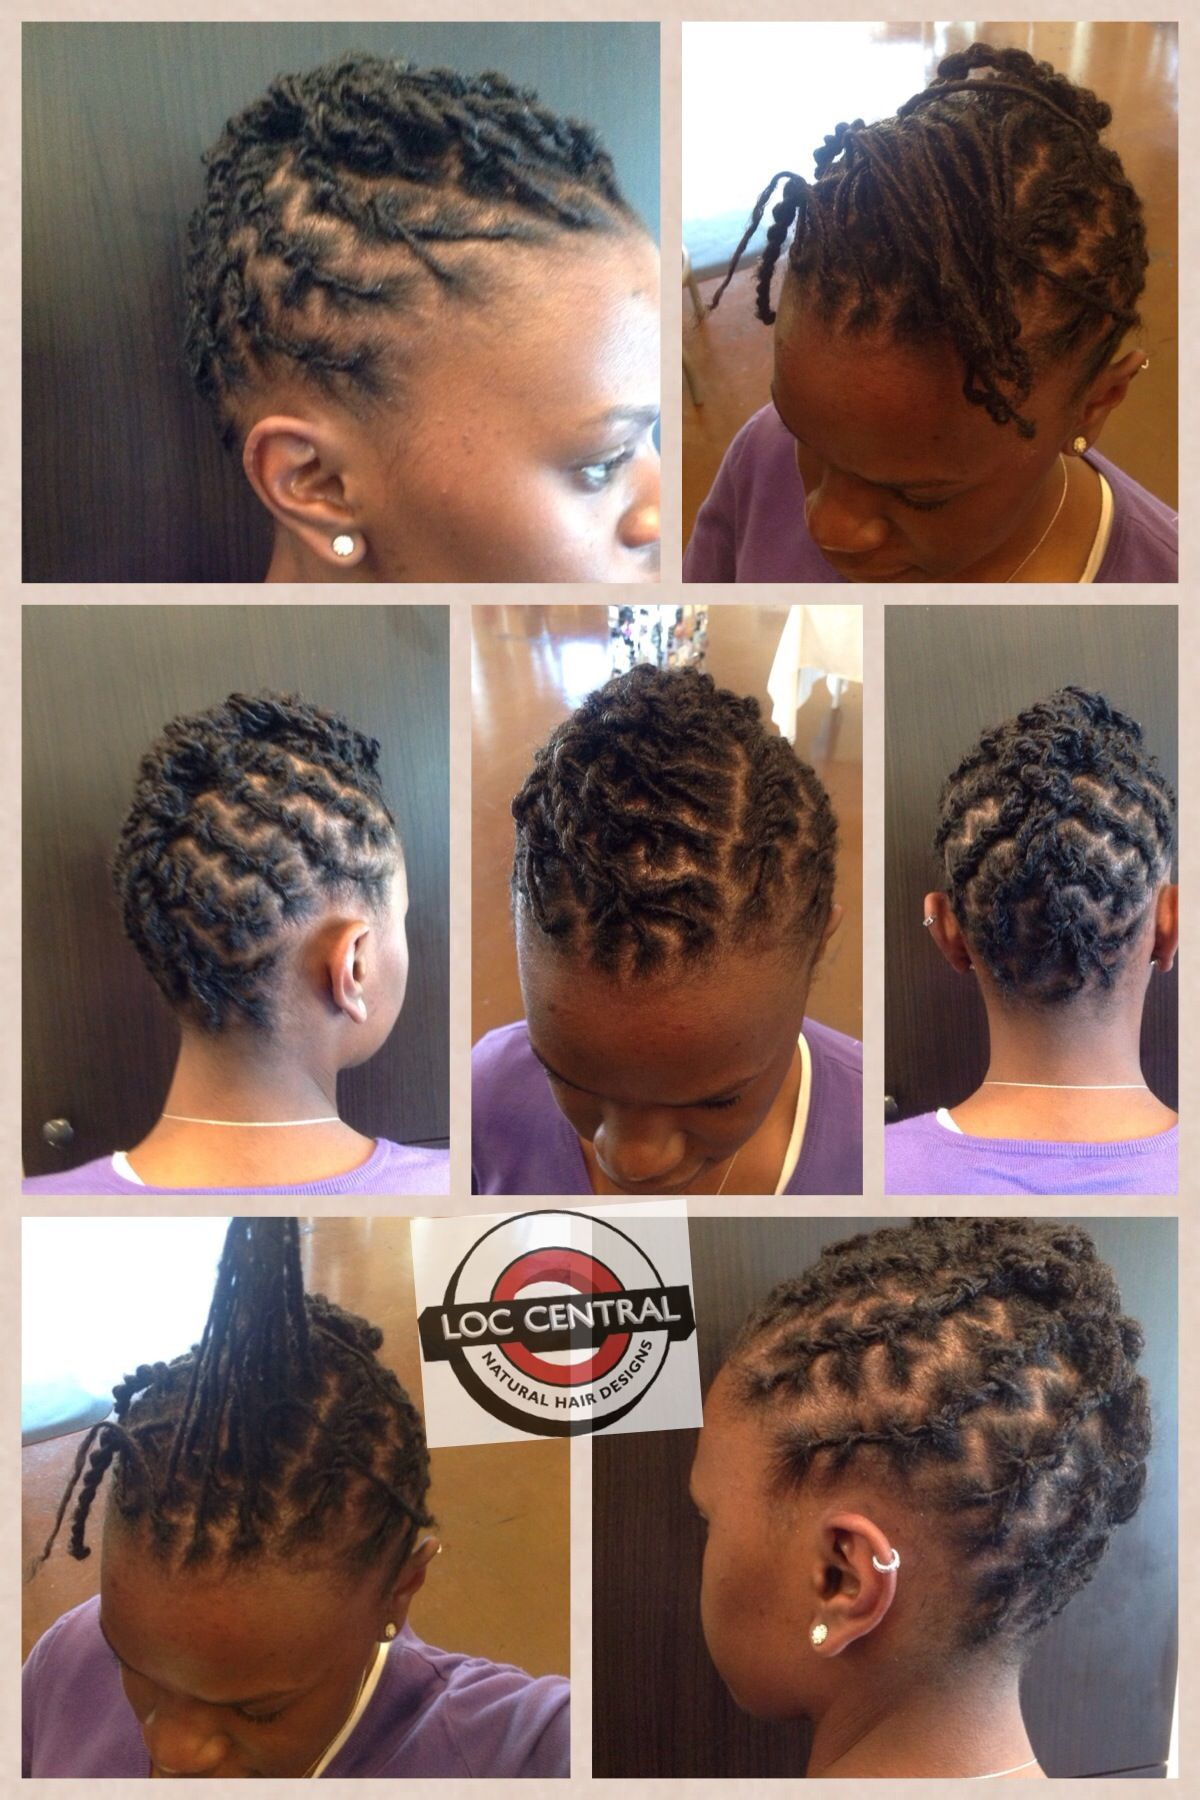 Loc Central Short Locs Hairstyles Locs Hairstyles Hair Styles